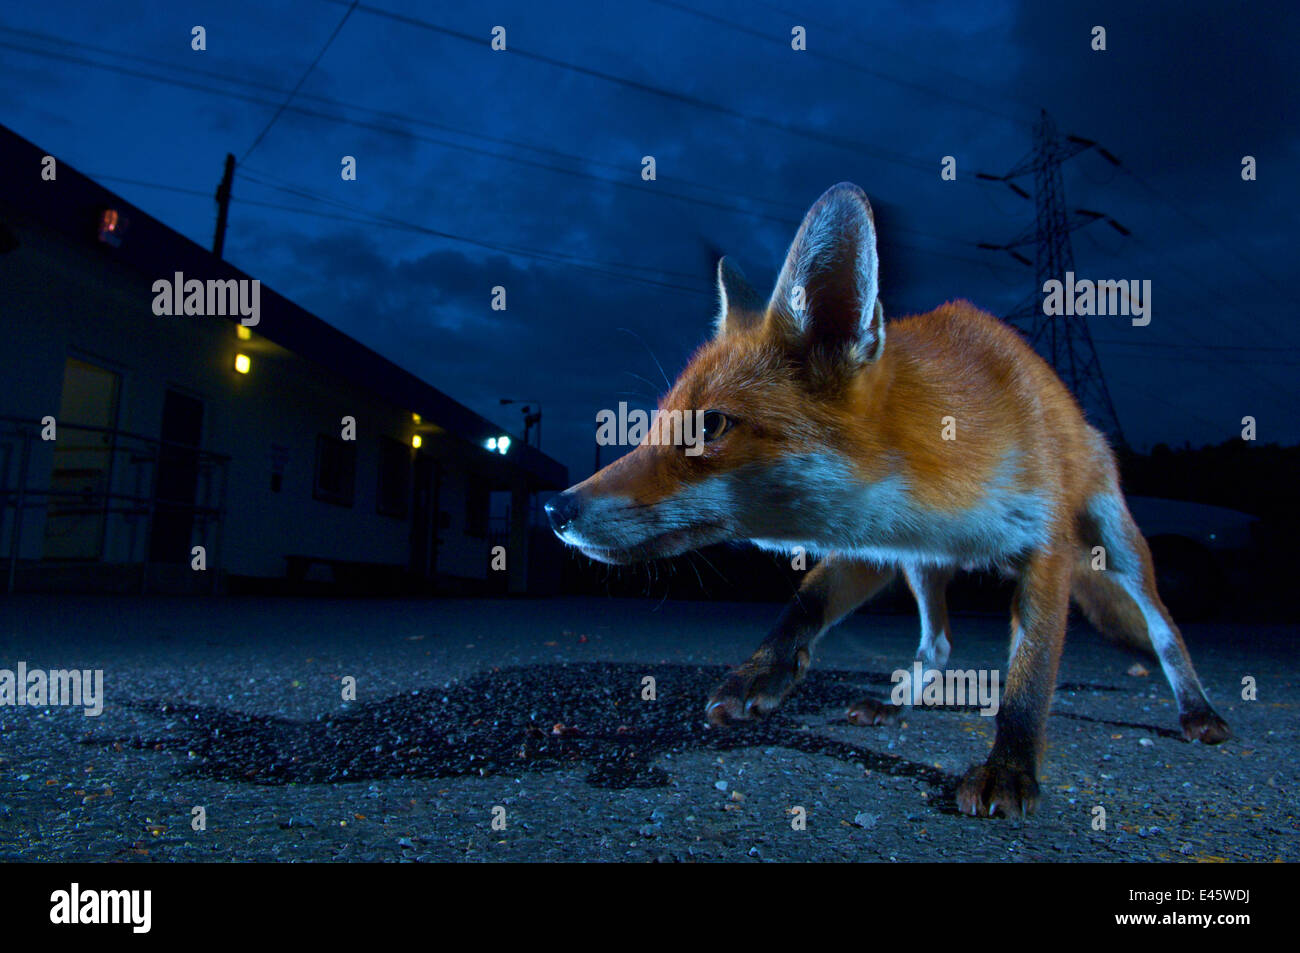 Urban fox (Vulpes vulpes) portrait in suburban street at night, London, England. - Stock Image